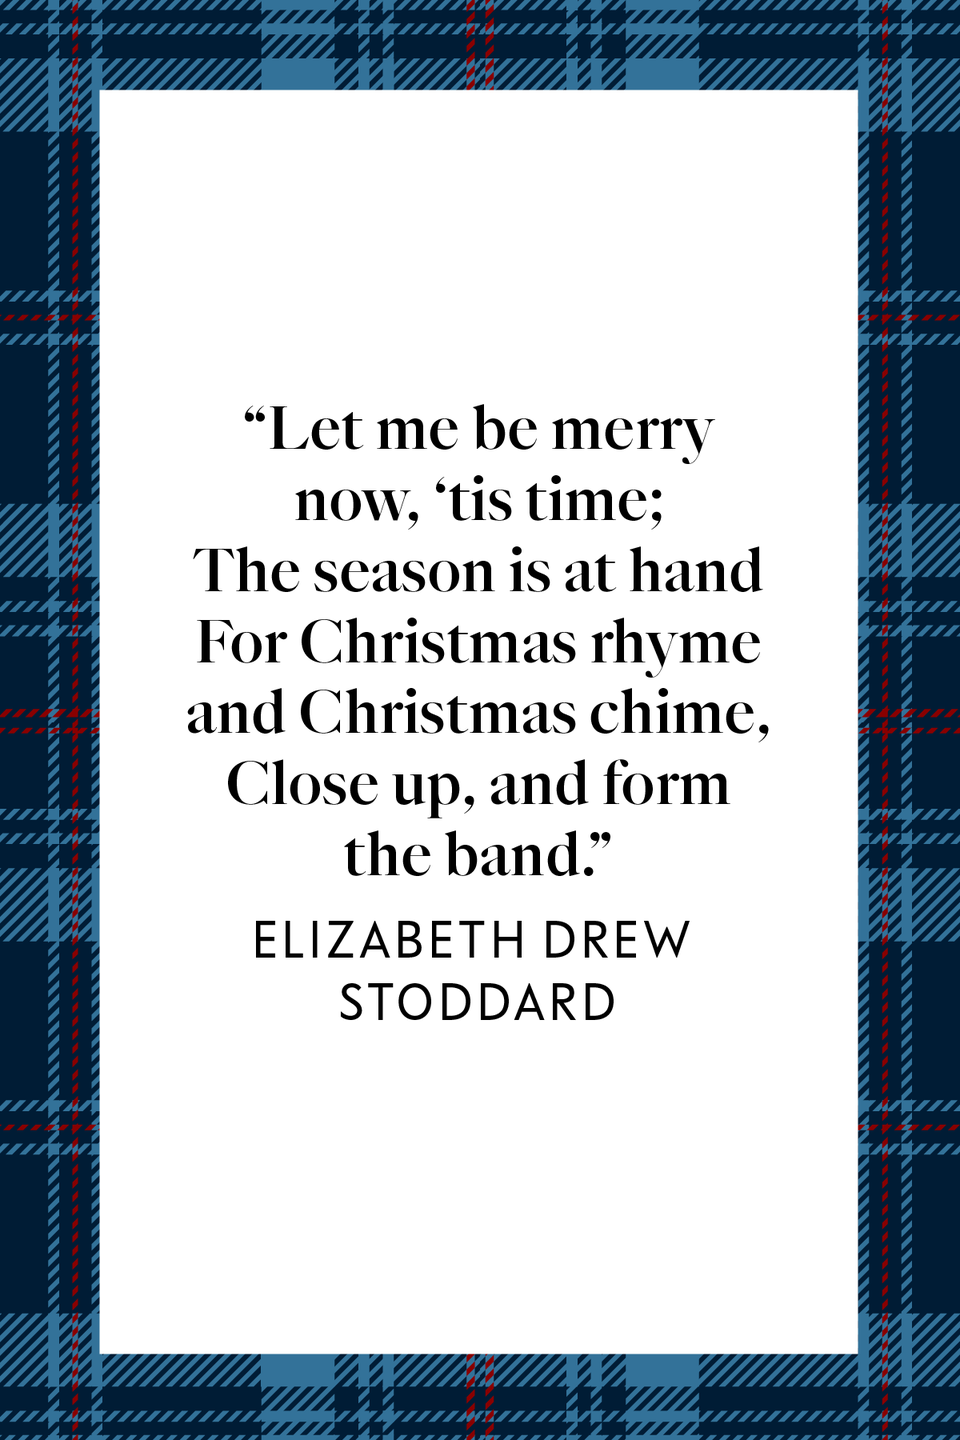 "<p>Novelist and poet Elizabeth Drew Stoddard wrote ""Let me be merry now, 'tis time; / The season is at hand / For Christmas rhyme and Christmas chime, / Close up, and form the band"" in her poem ""<a href=""https://poets.org/poem/christmas-comes-again"" rel=""nofollow noopener"" target=""_blank"" data-ylk=""slk:Christmas Comes Again"" class=""link rapid-noclick-resp"">Christmas Comes Again</a>.""<br></p>"